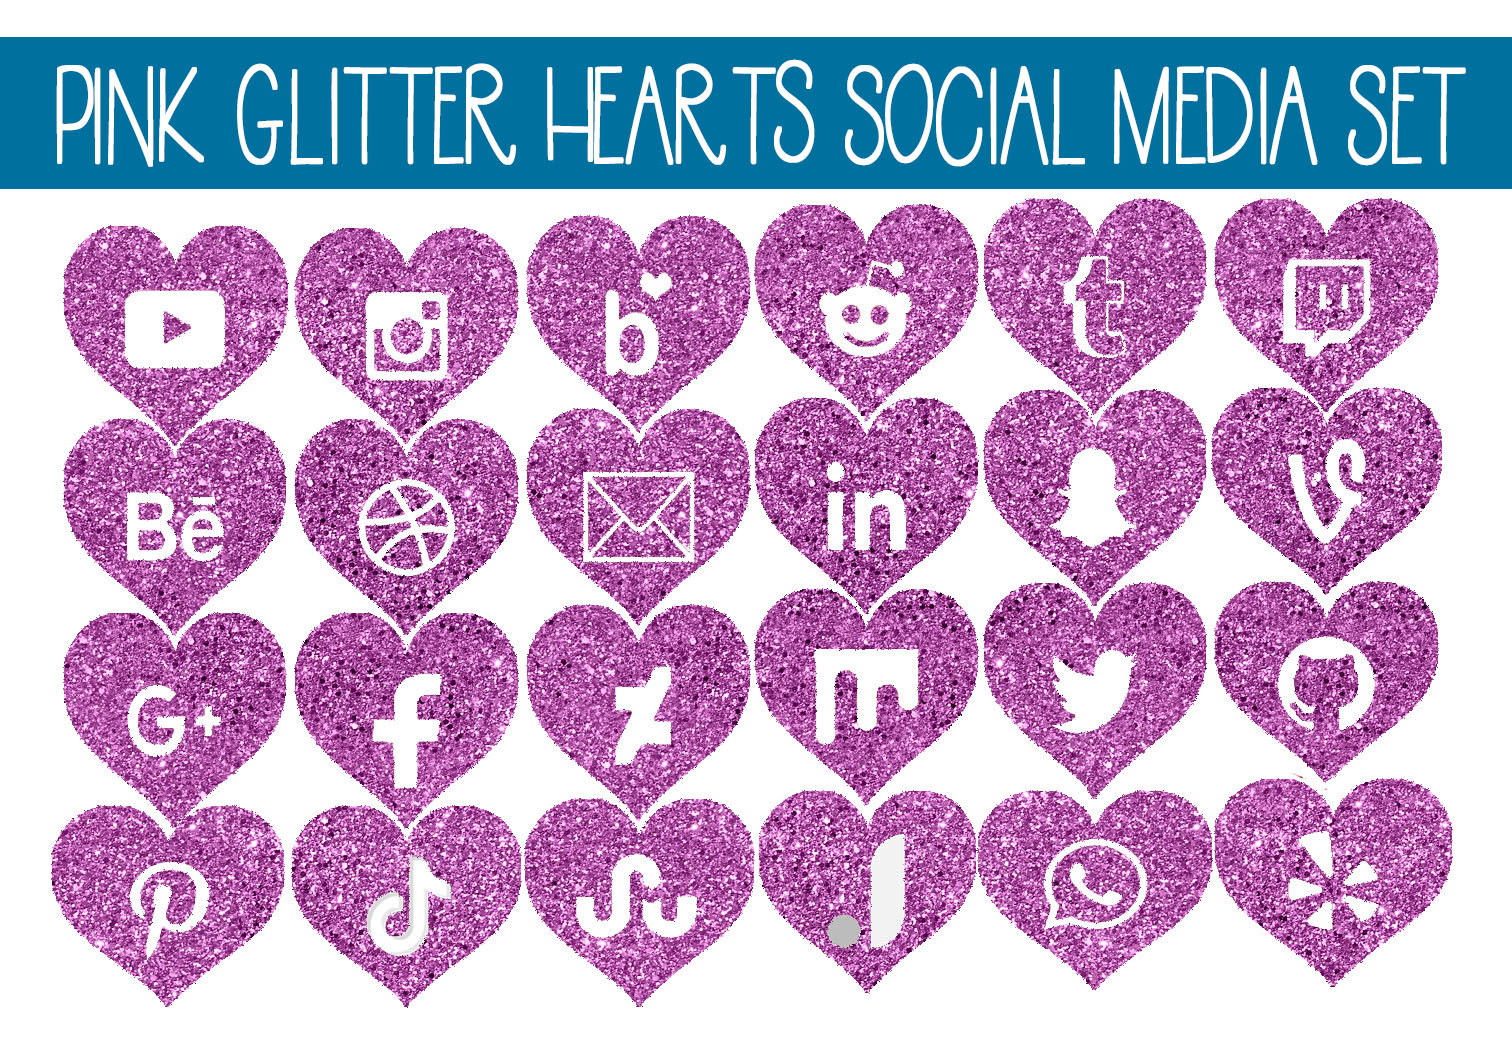 Download Free Pink Glitter Heart Social Media Icon Set Graphic By Capeairforce Creative Fabrica for Cricut Explore, Silhouette and other cutting machines.